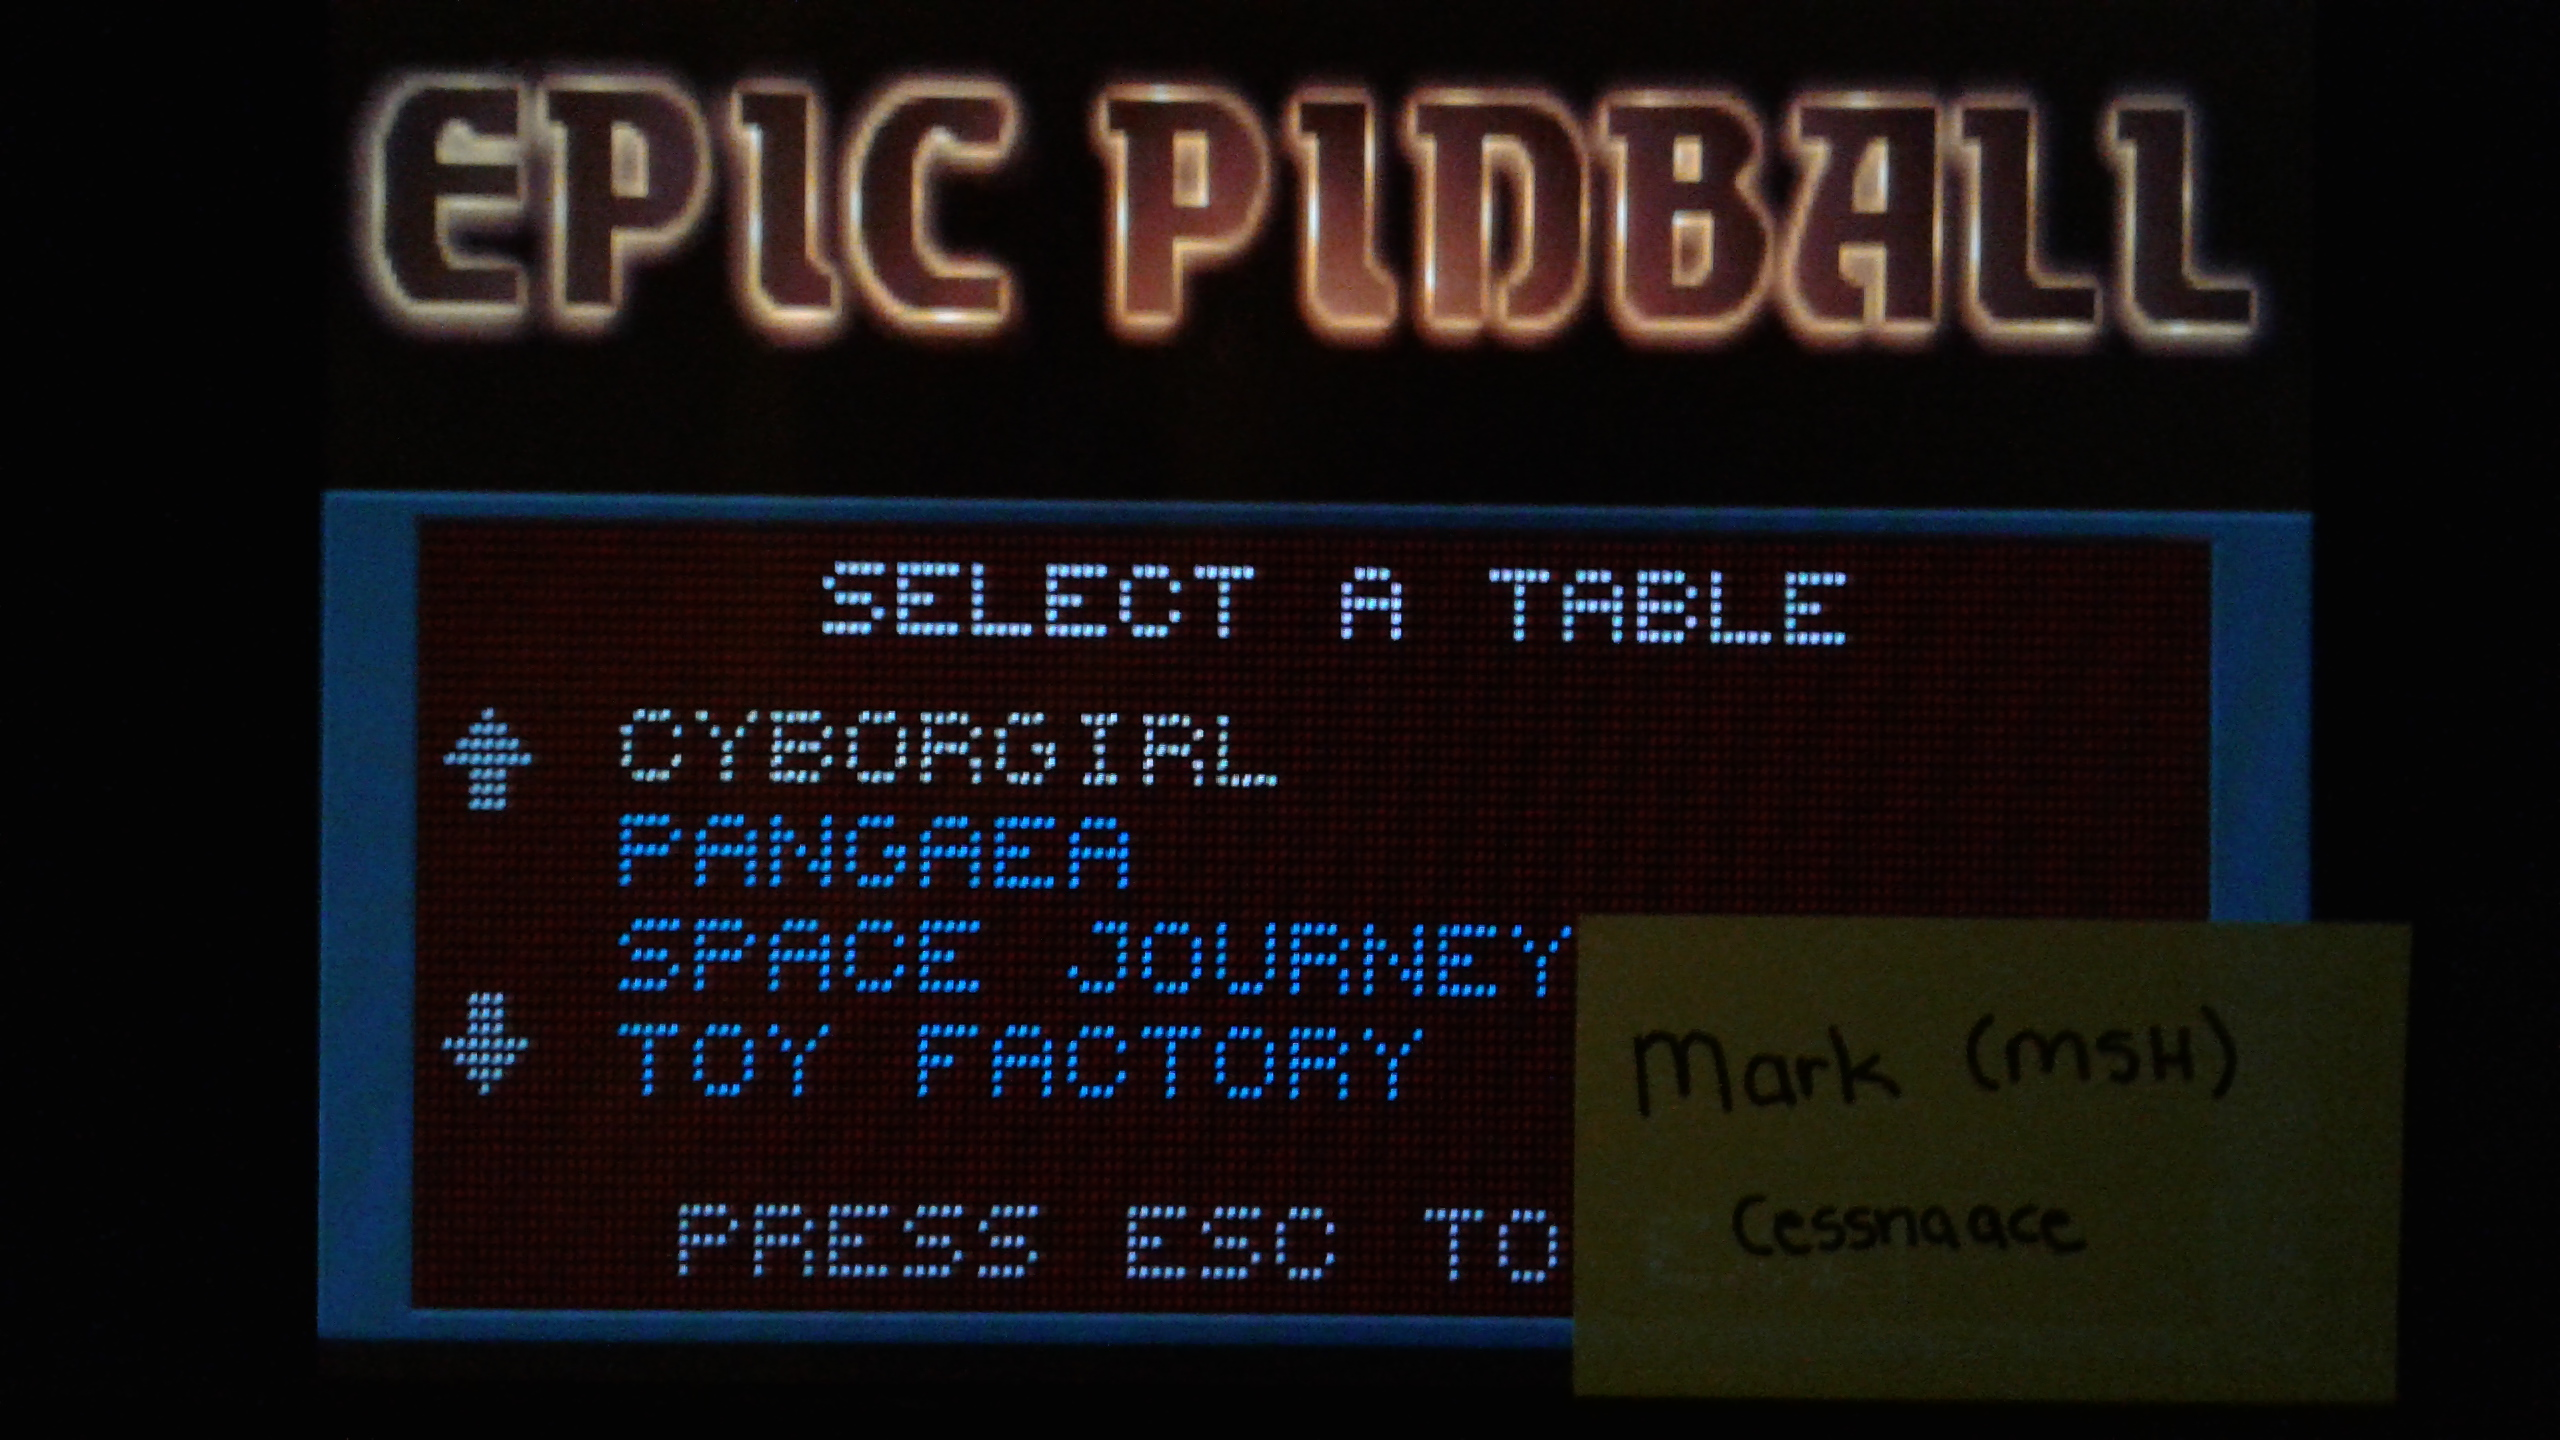 Mark: Epic Pinball: Cyborgirl (PC Emulated / DOSBox) 2,662,150 points on 2019-05-13 02:06:38